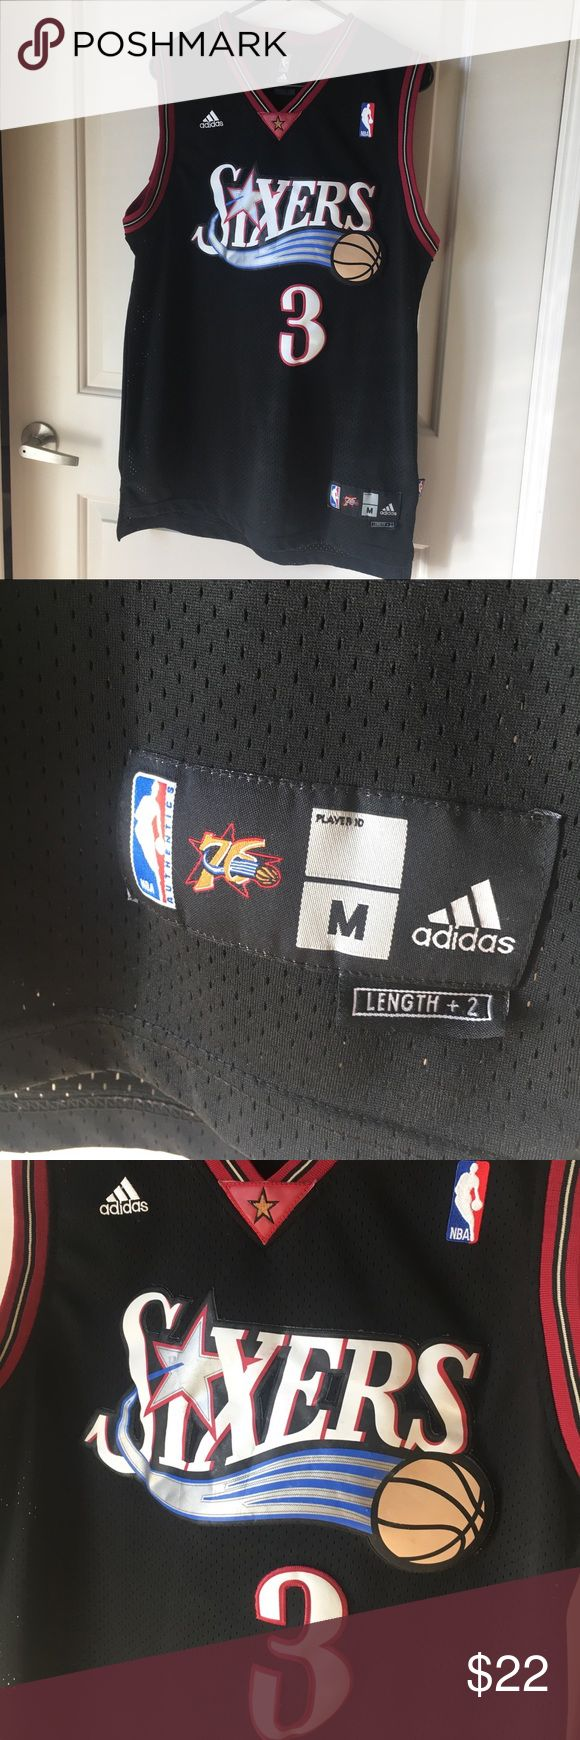 Allen Iverson Sixers jersey Allen Iverson Sixers jersey. Adidas size medium. There is a small stain as shown on the number 3 as shown in the pictures. I offer discounts for bundles and welcome offers :) vintage NBA jersey! adidas Shirts